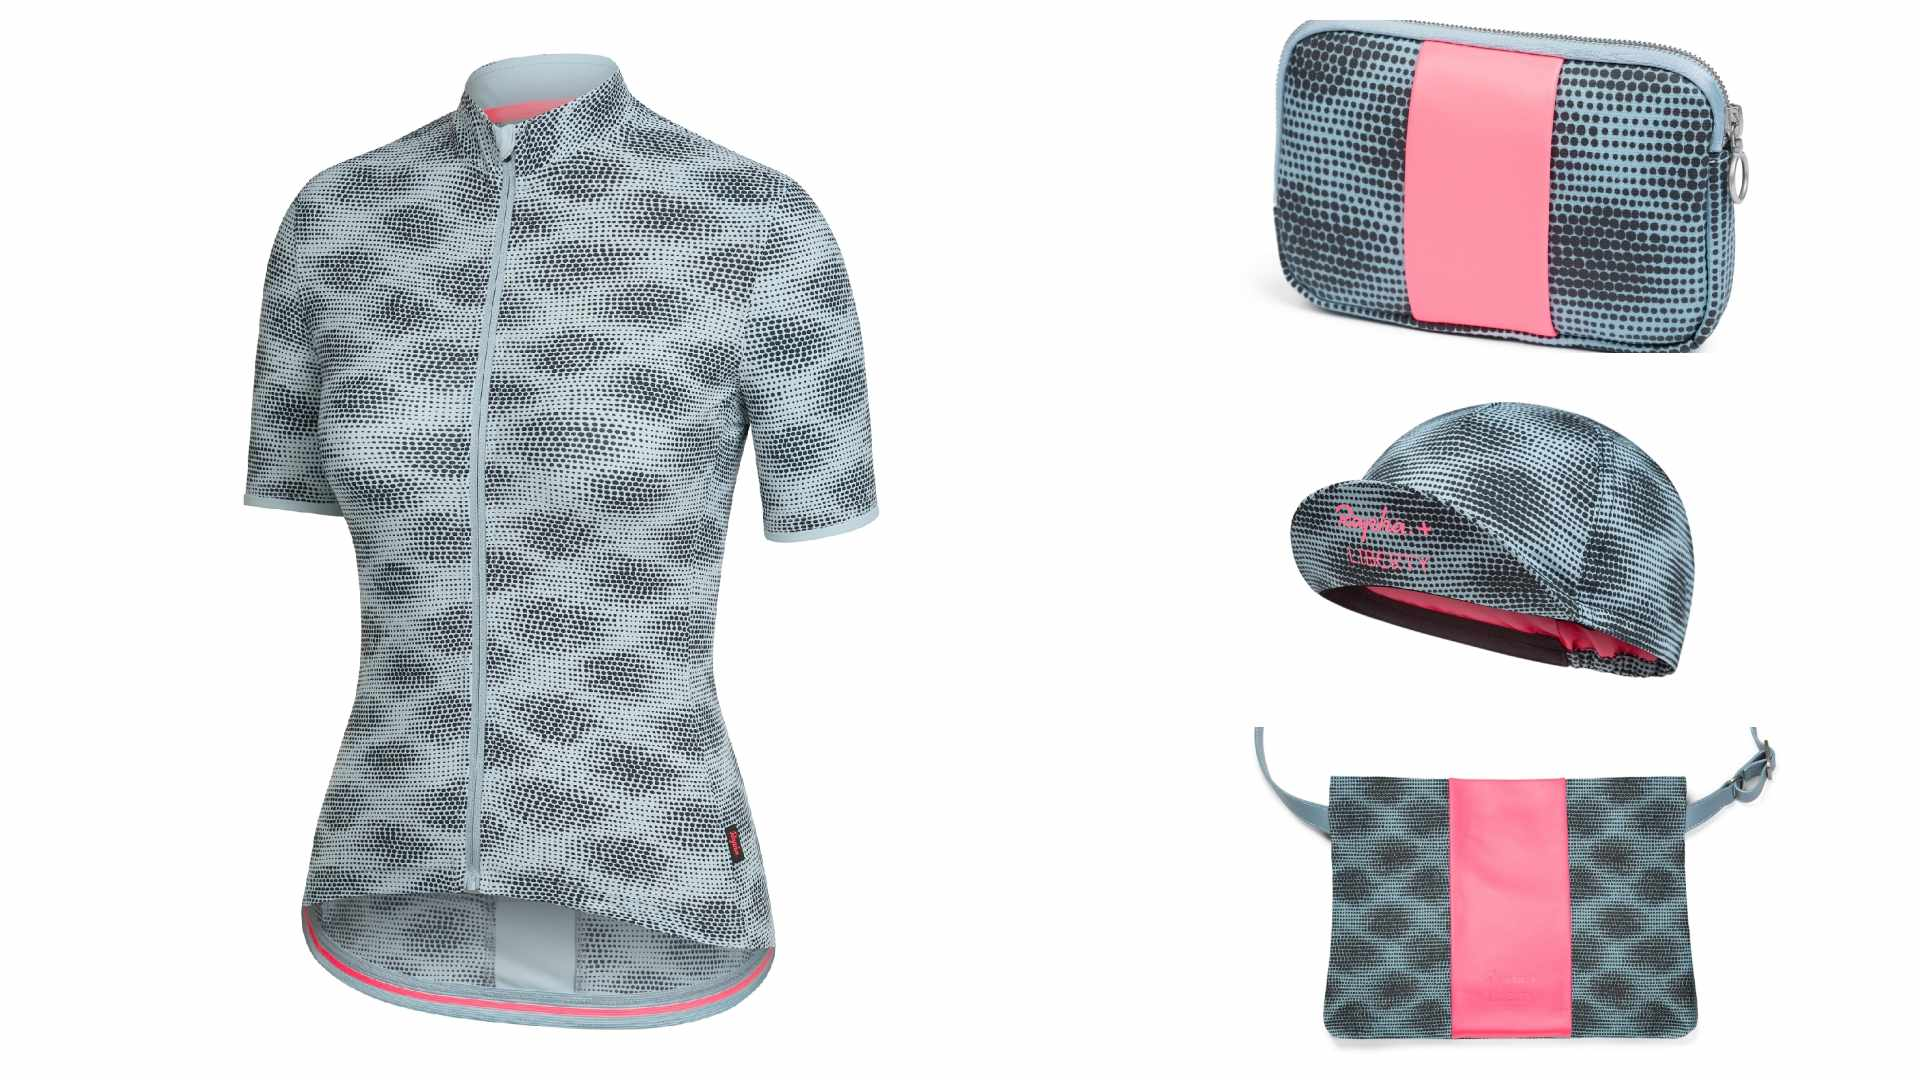 The new Rapha + Liberty collection for autumn winter 2015